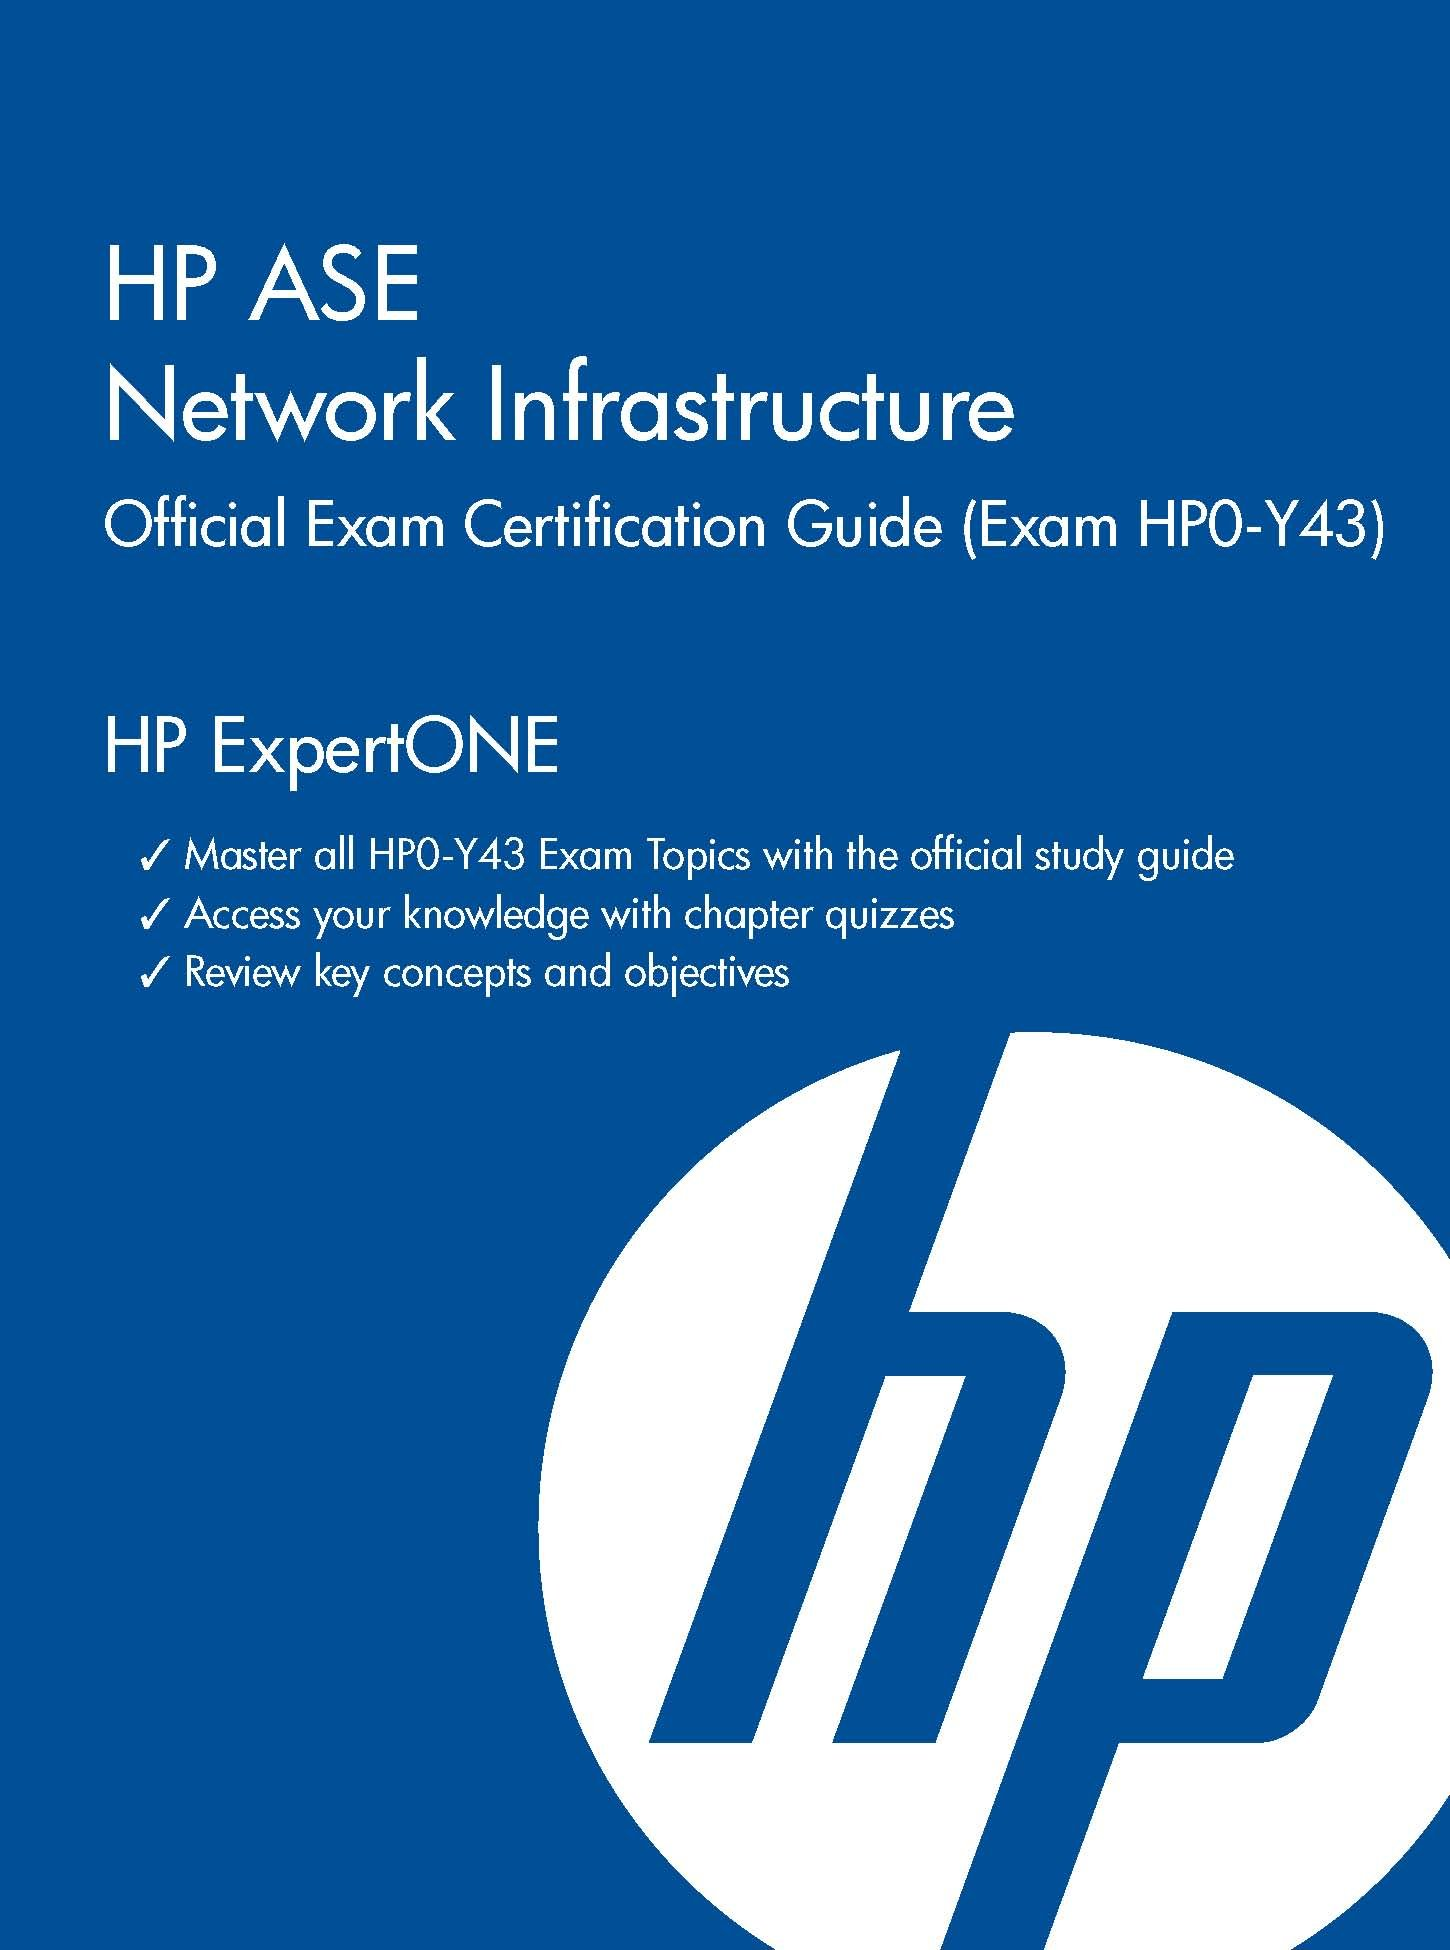 Hp ase network infrastructure official exam certification guide hp ase network infrastructure official exam certification guide exam hp0 y43 richard deal 9781937826086 amazon books xflitez Images